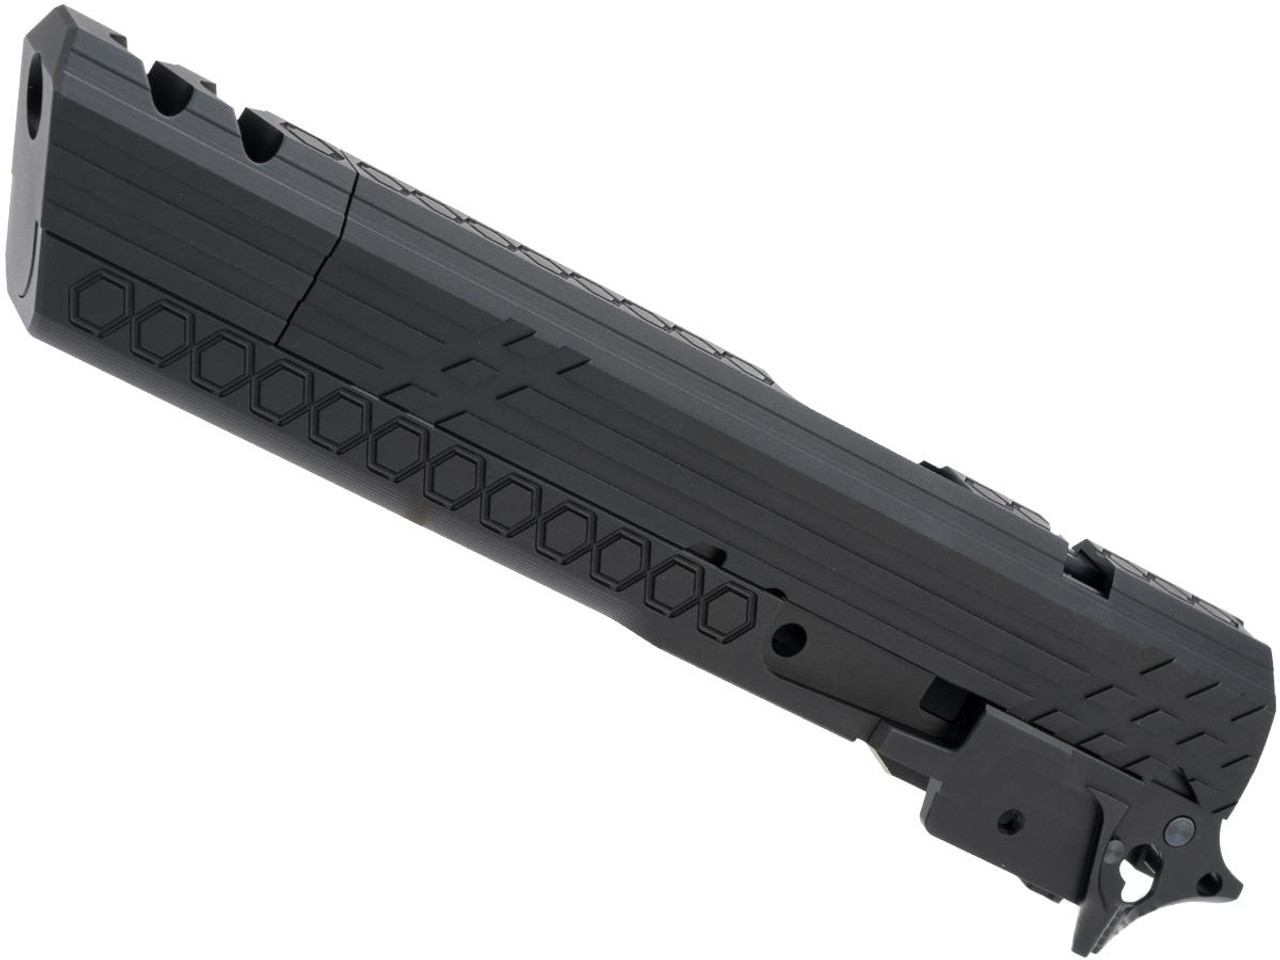 Airsoft Masterpiece Smoking Hole Open Kit for Tokyo Marui Hi-Capa Airsoft  Pistols (Color: Black)